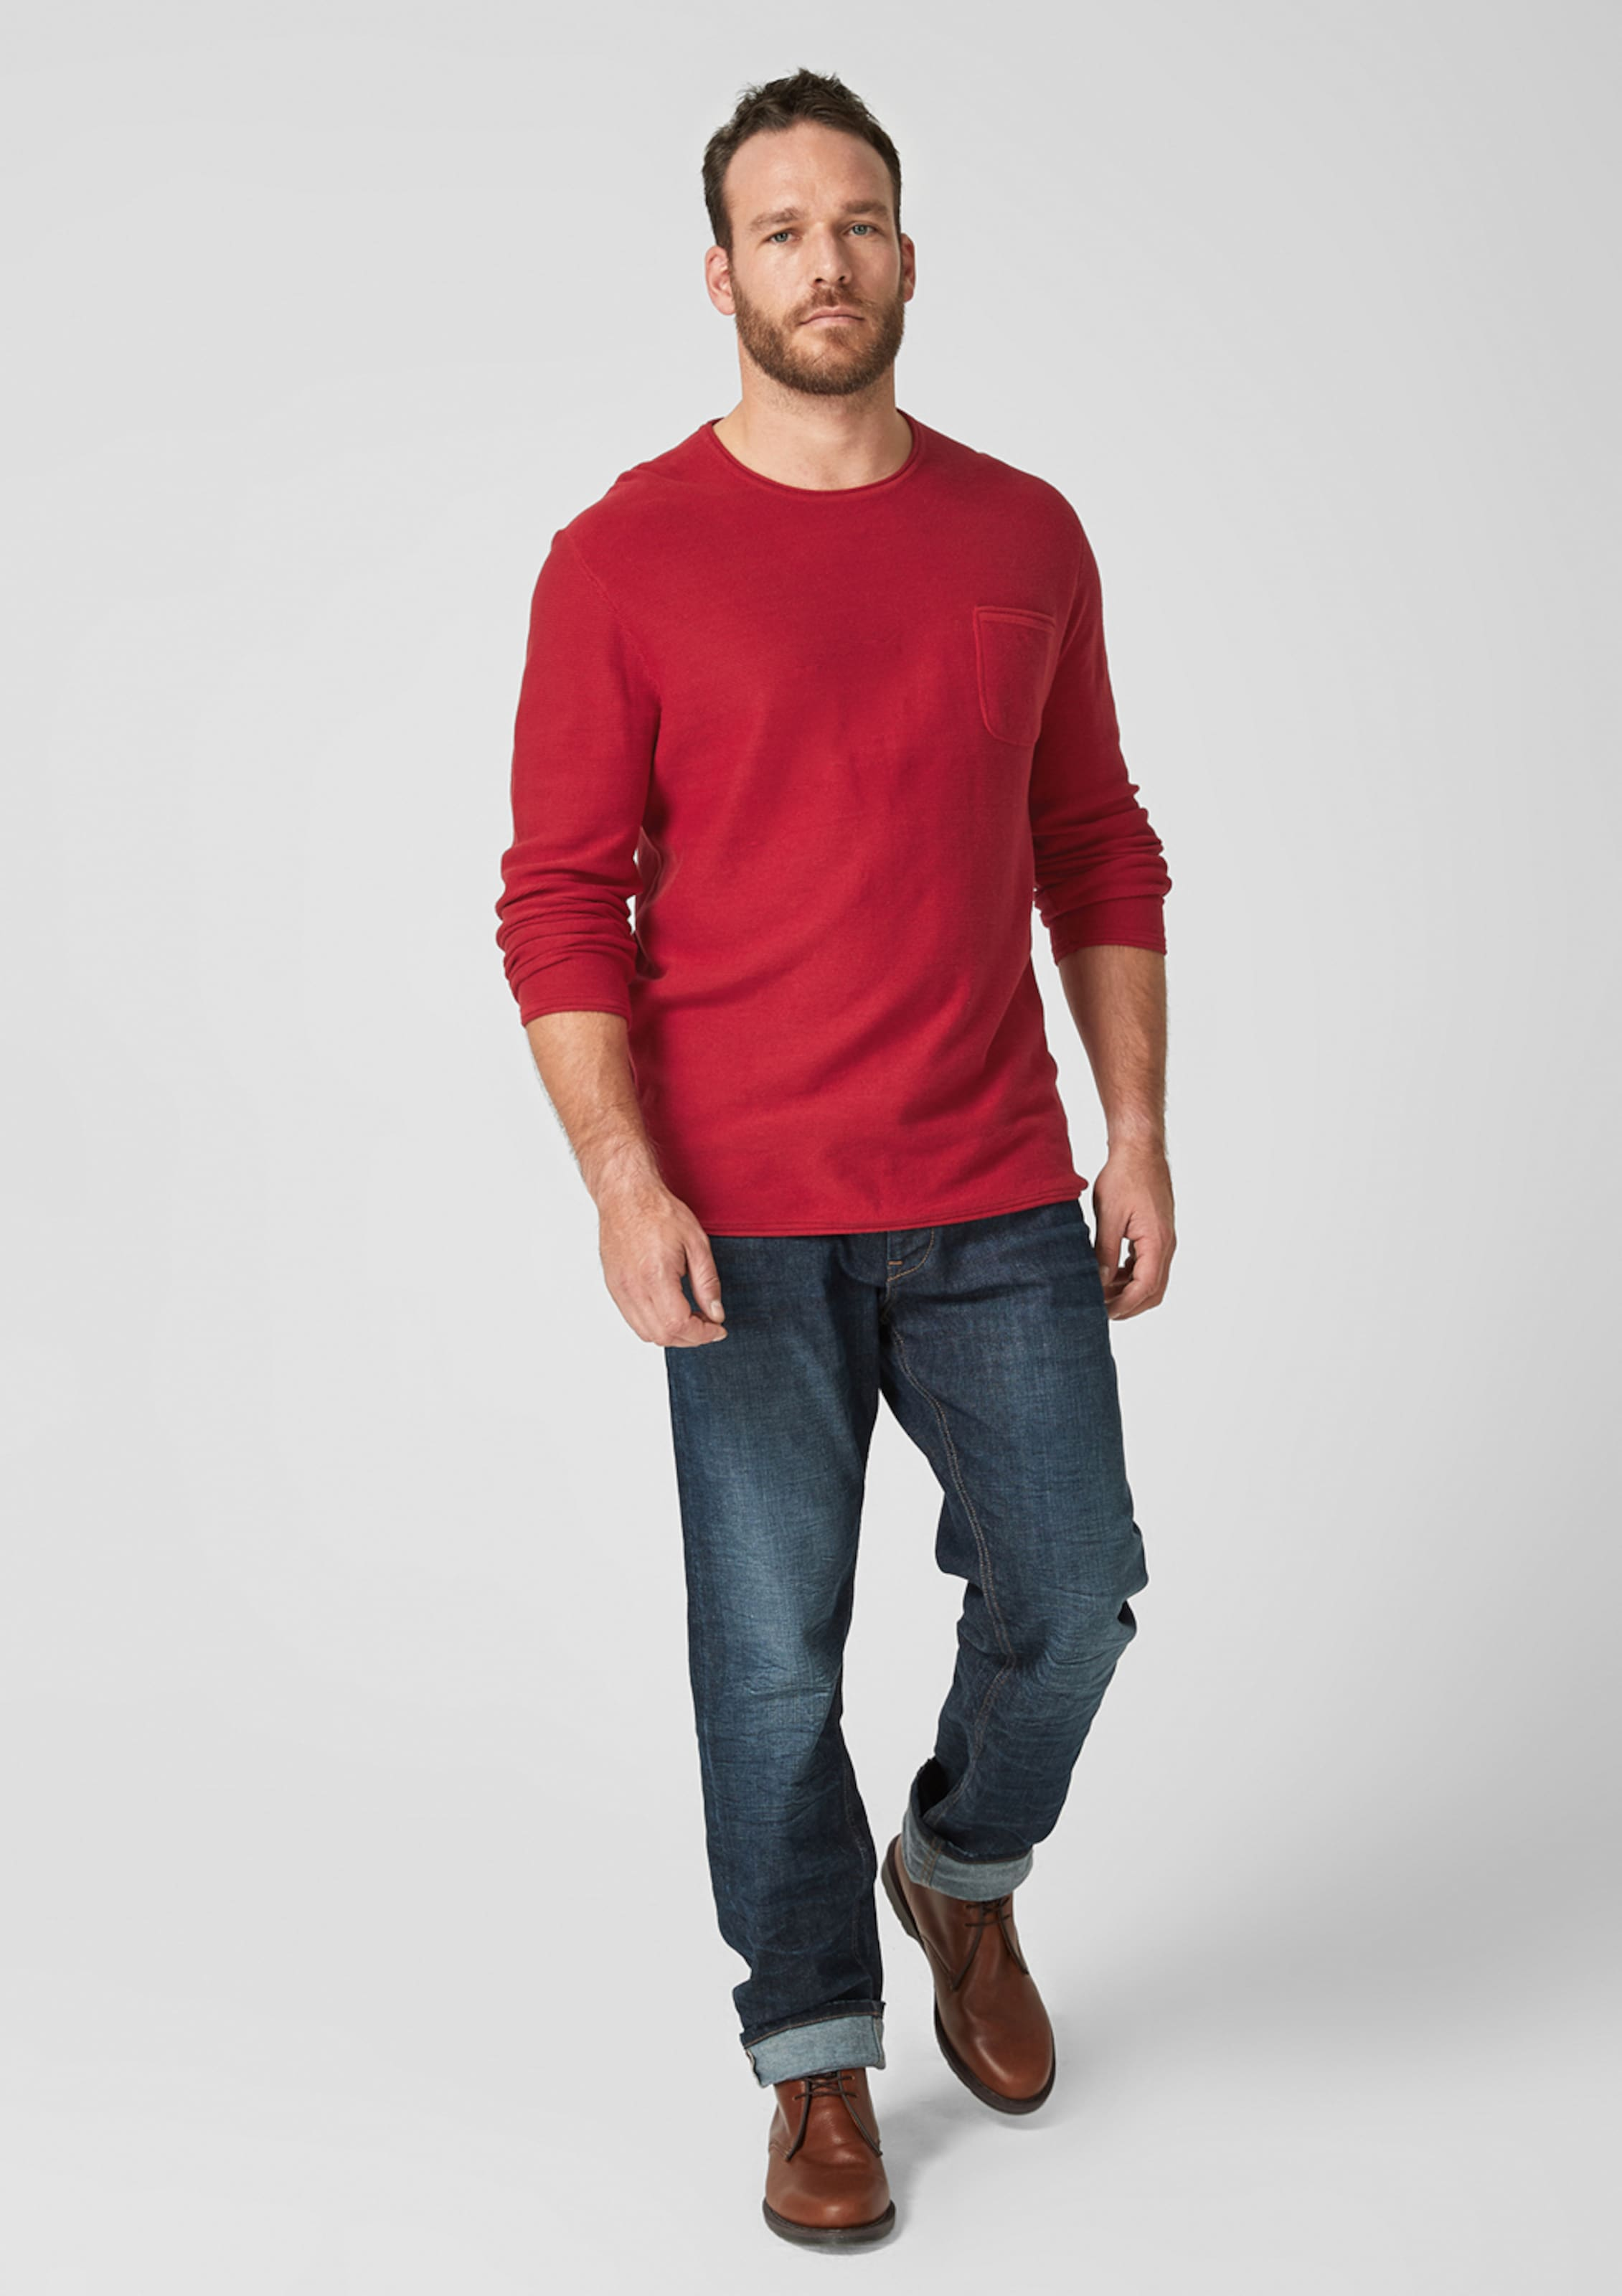 oliver Label In Rot Pullover S Red mO80Nwvn